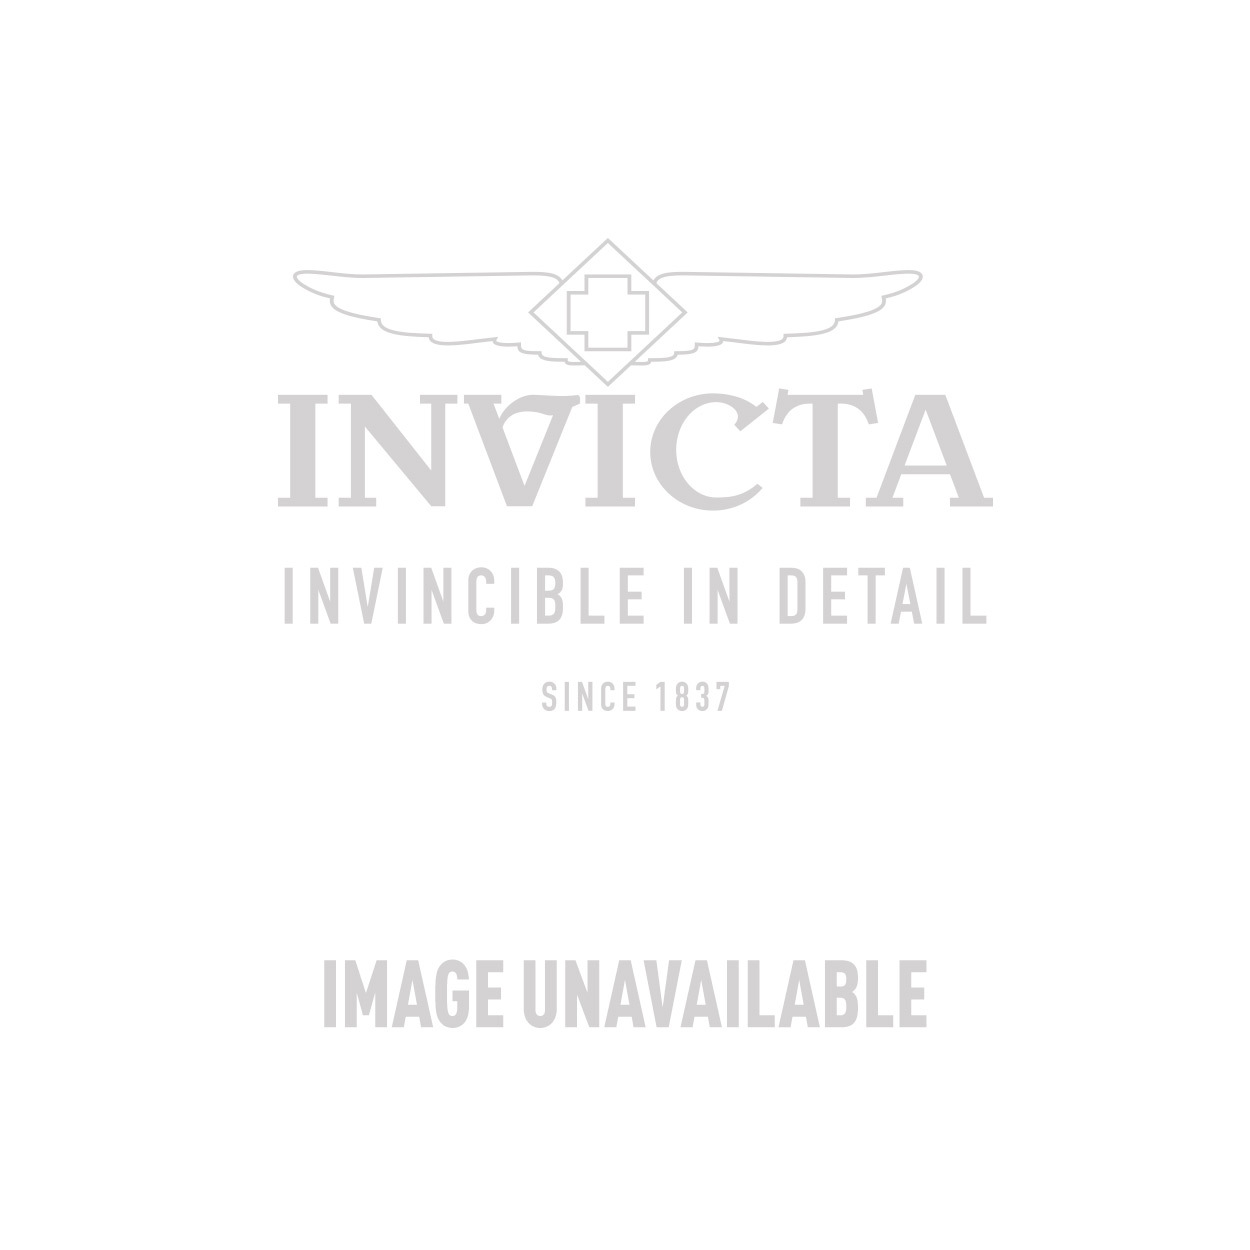 Invicta Angel Swiss Movement Quartz Watch - Rose Gold case Stainless Steel band - Model 90256